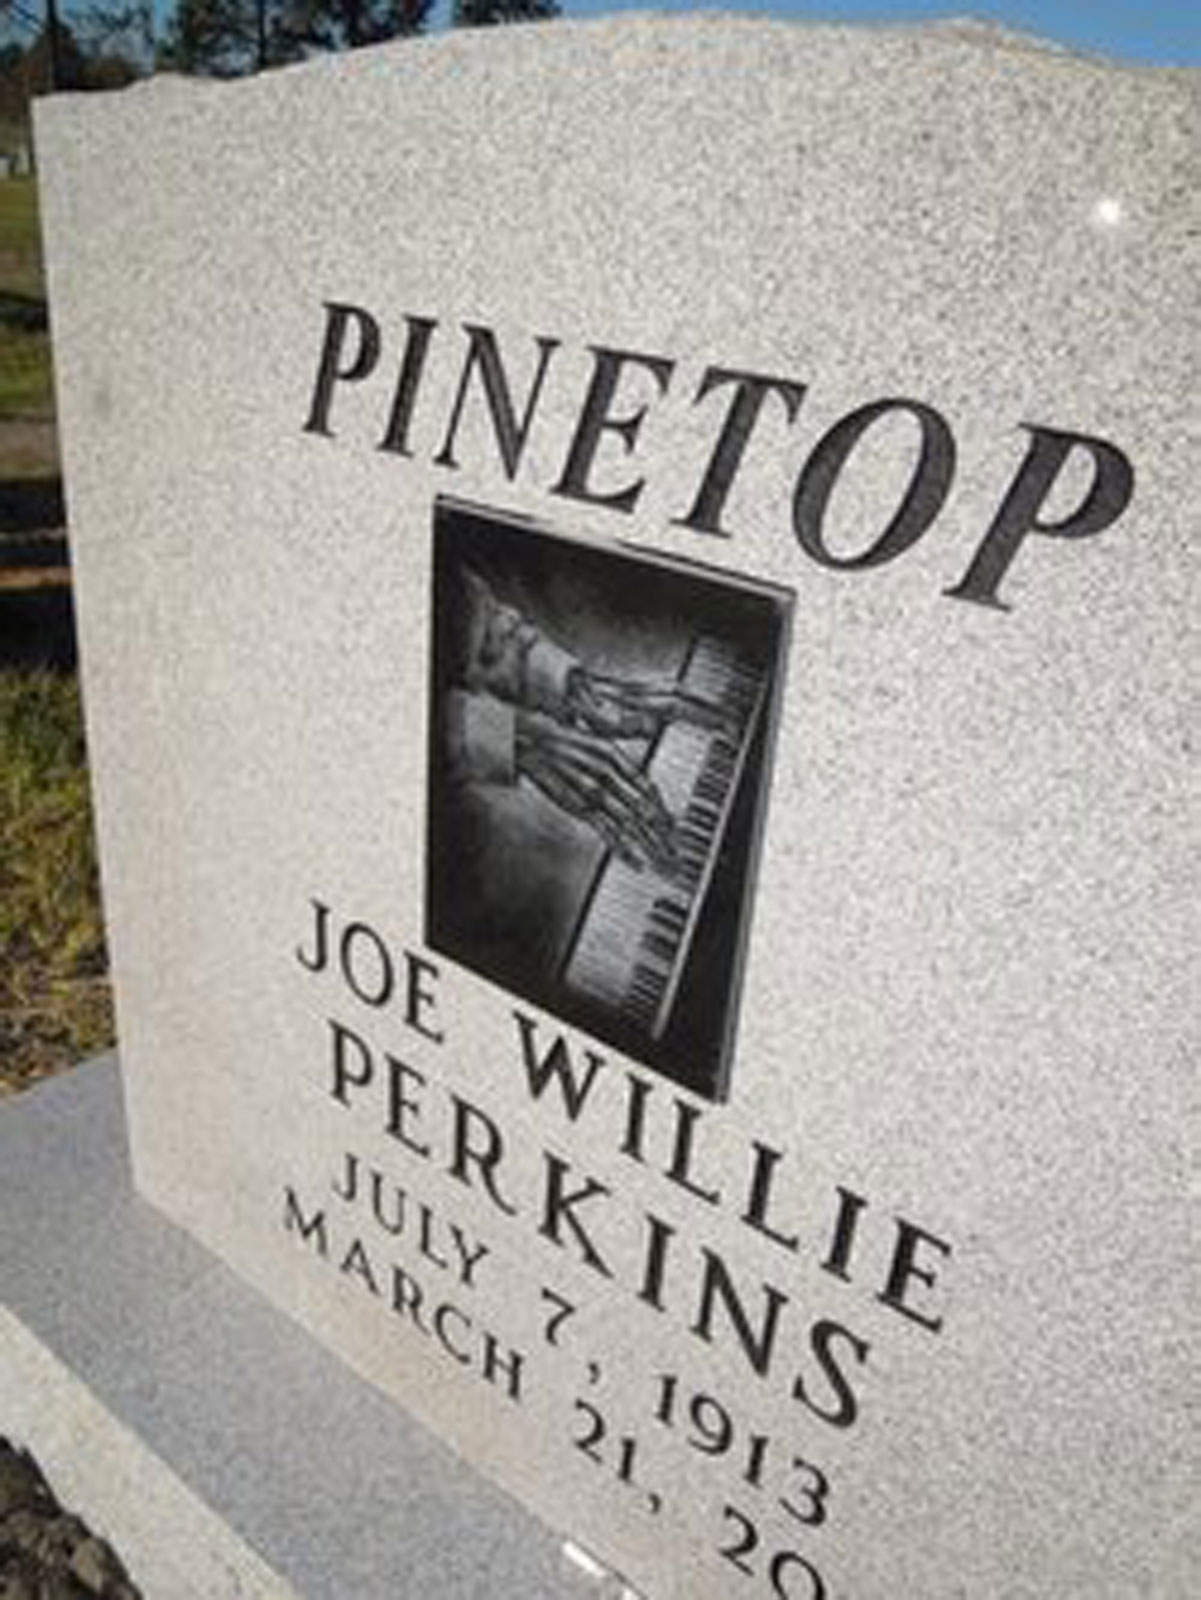 Pinetop-Headstone-small